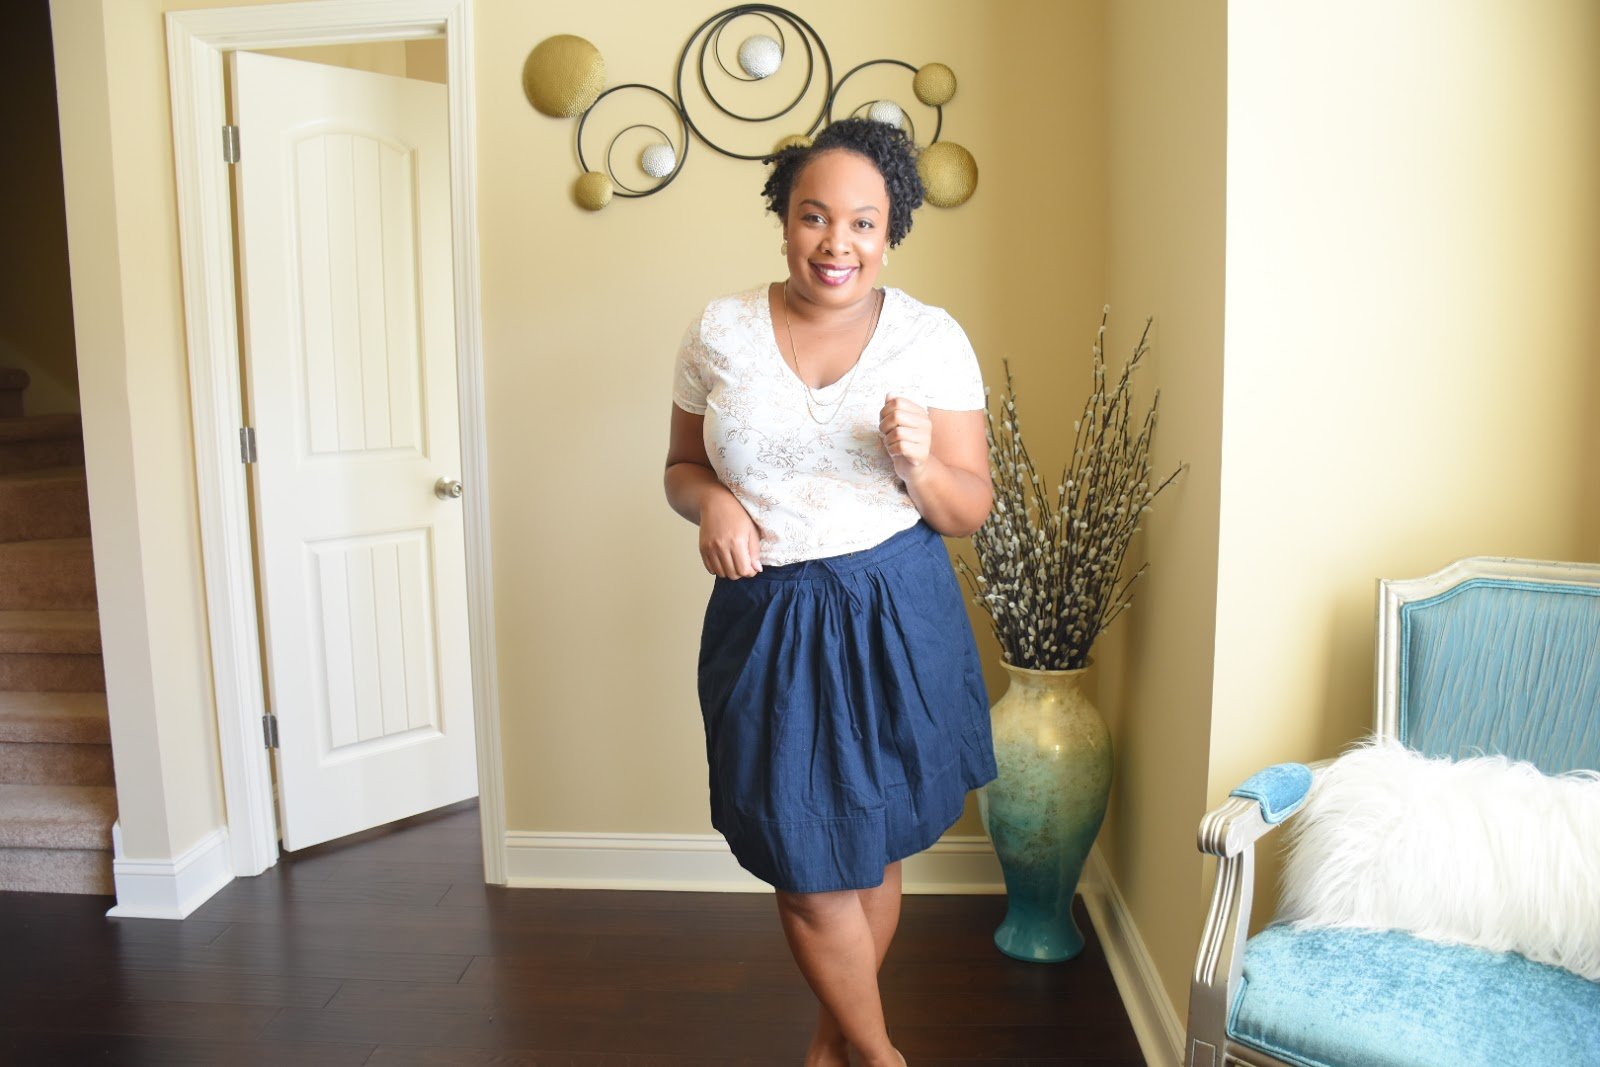 Mini Target Fall Clothes Haul: See What I Got  via  www.productreviewmom.com